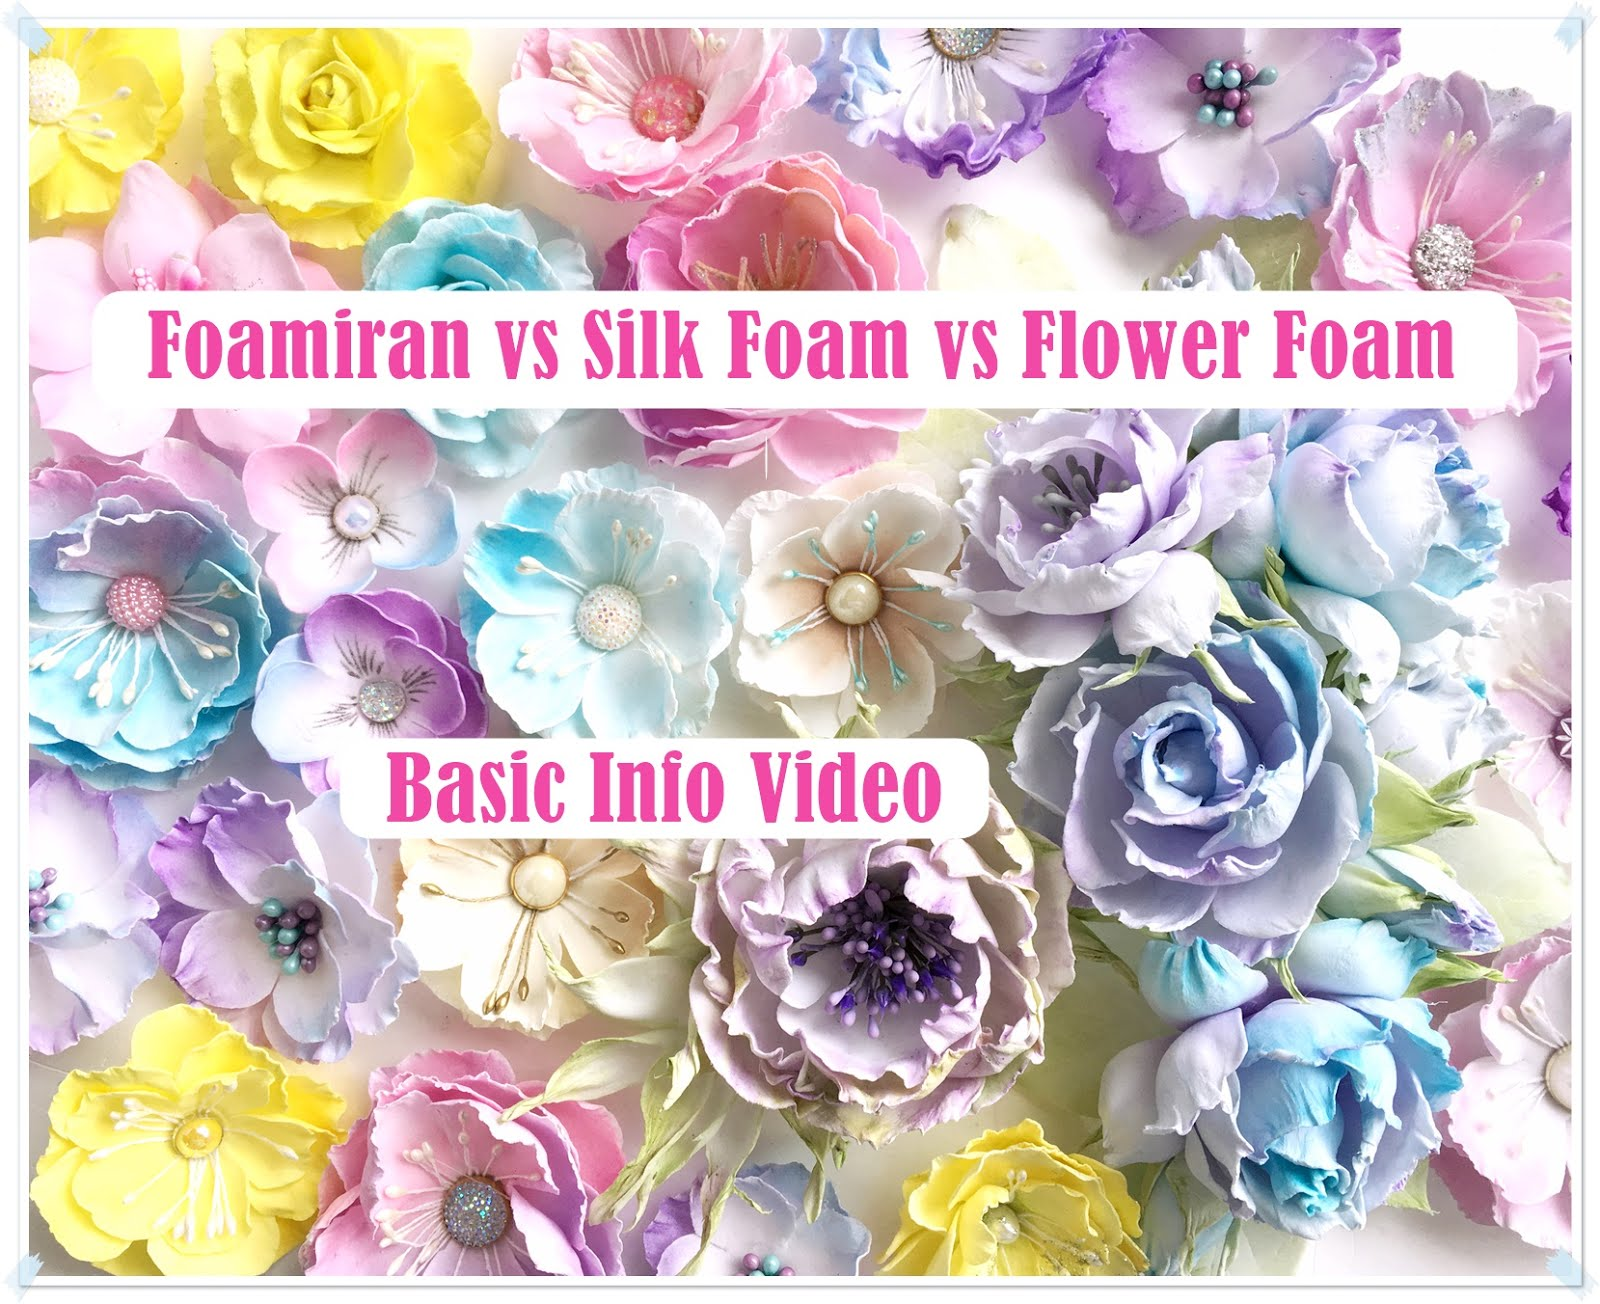 Foamiran vs Silk Foam vs Flower Foam Video